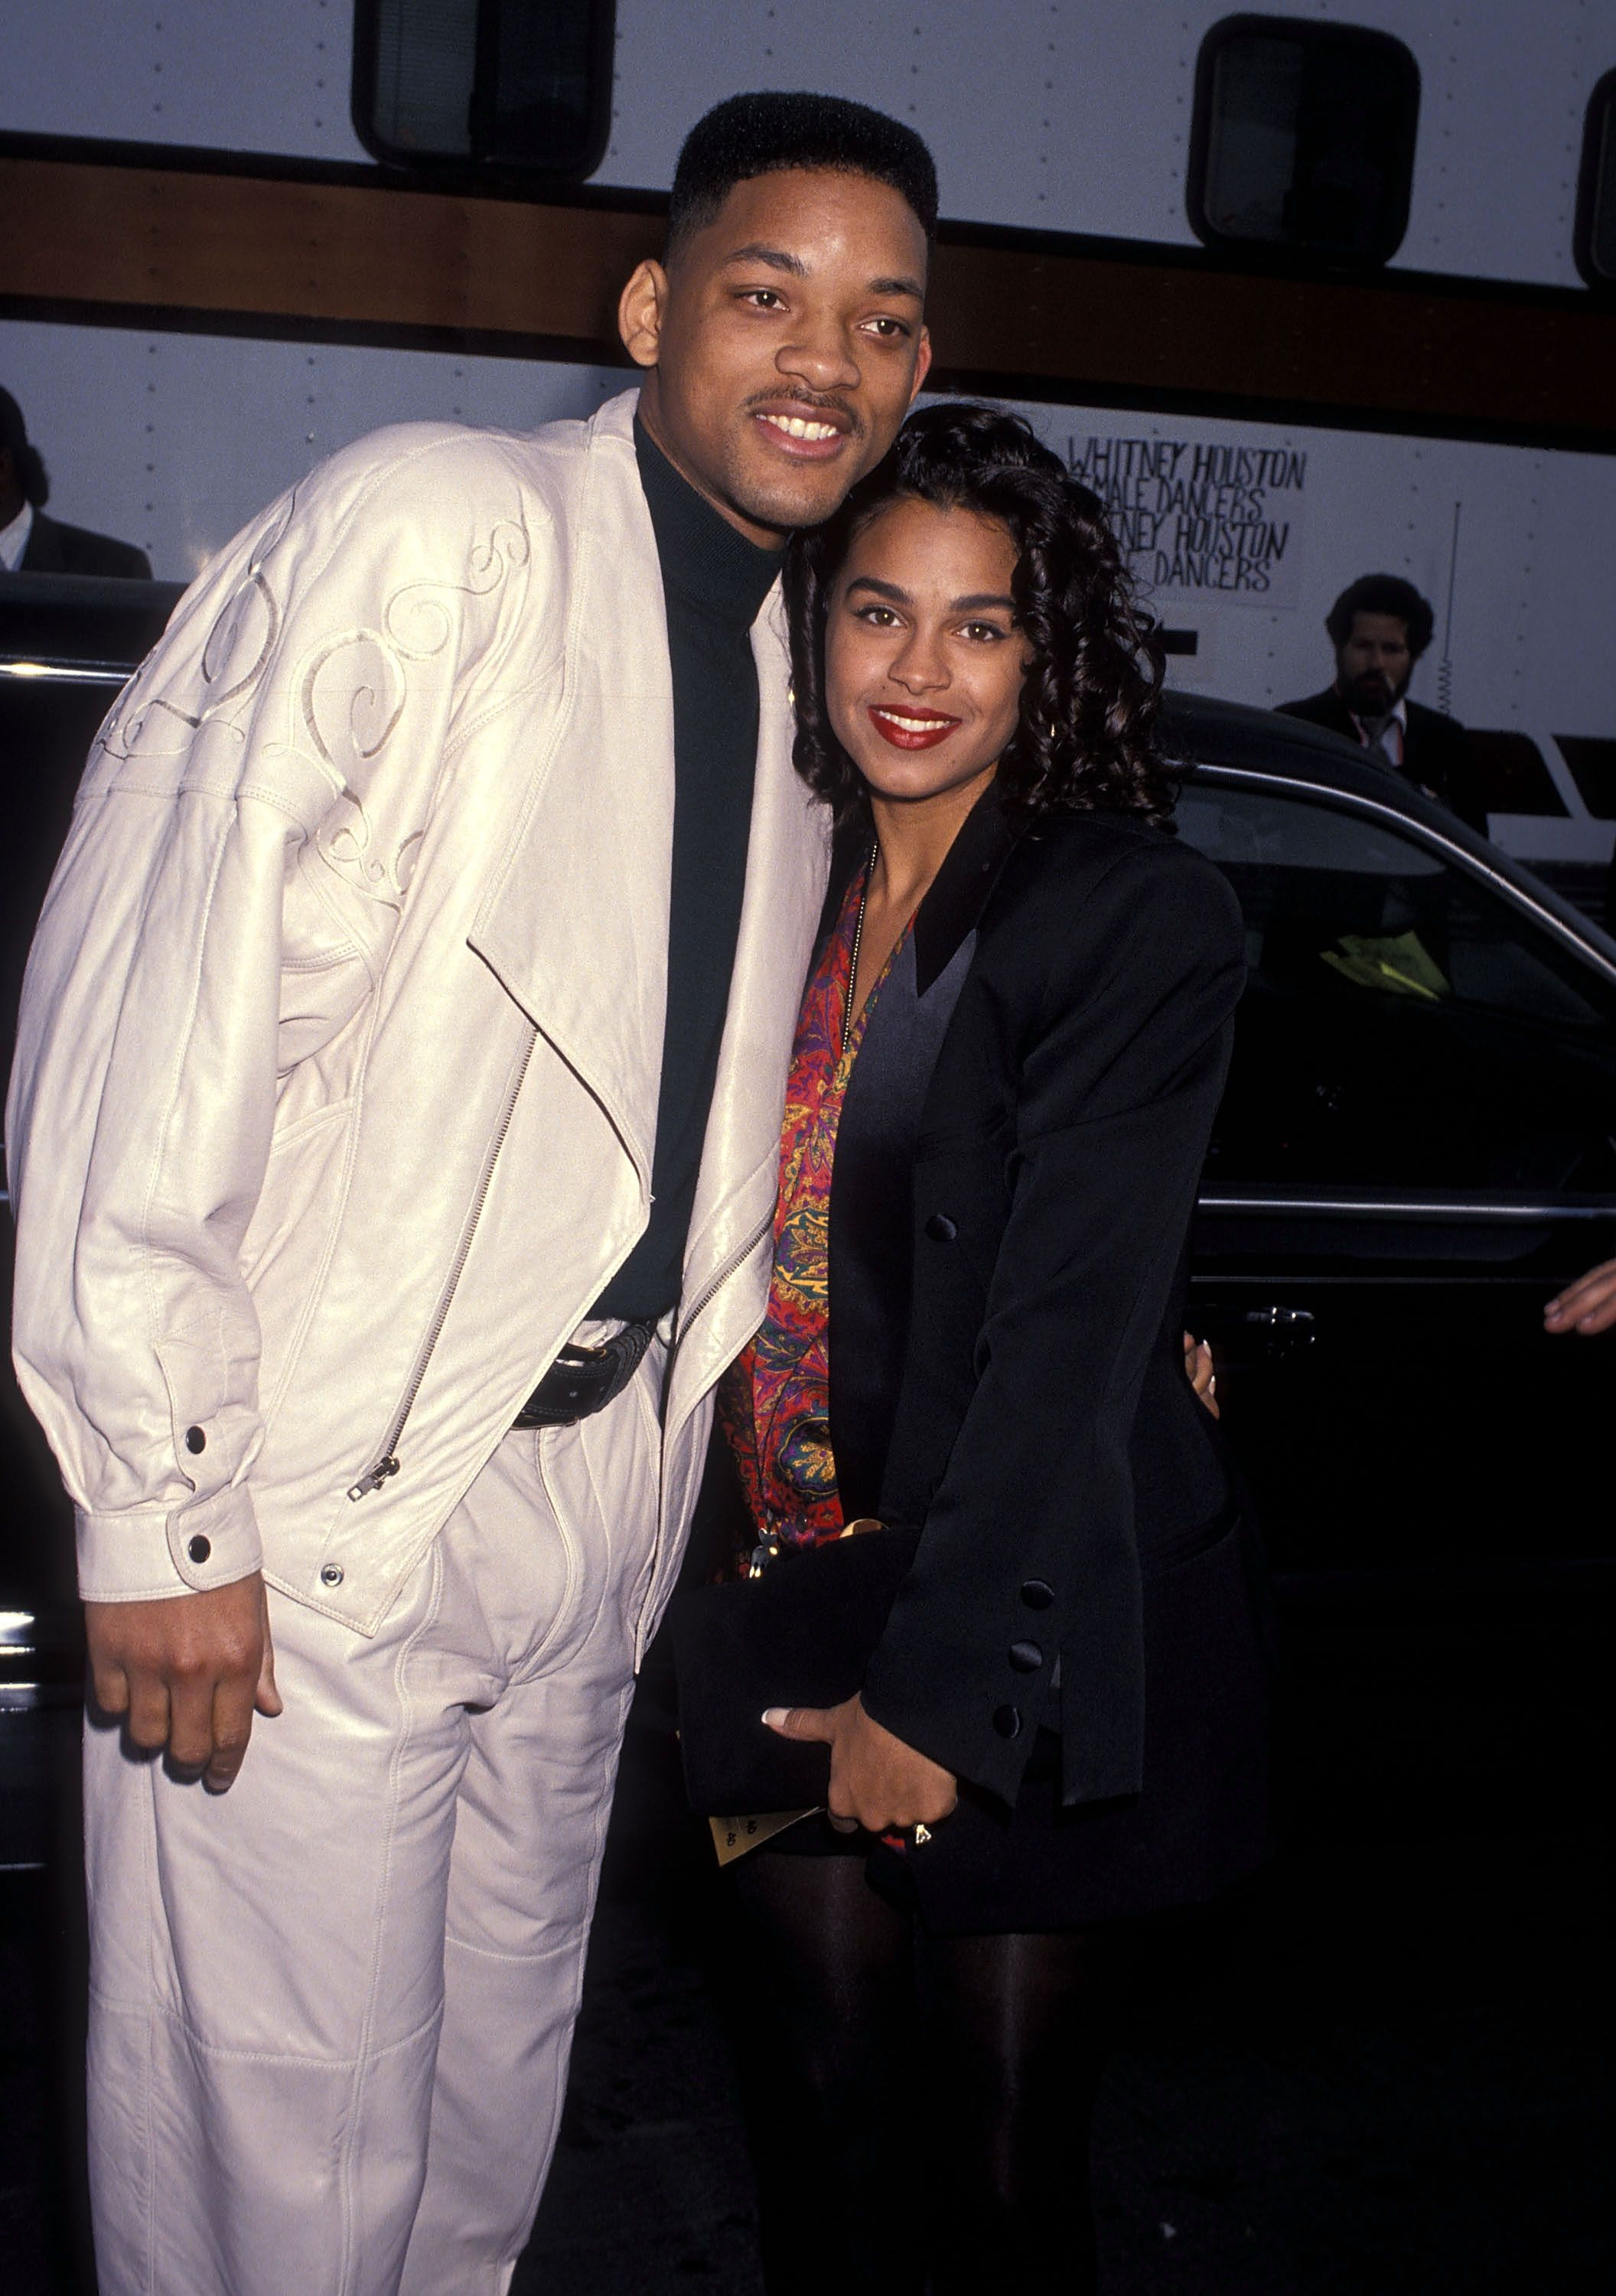 Will Smith andSheree Zampino atthe 19th Annual American Music Awards on January 27, 1992,in Los Angeles, California | Photo:Ron Galella, Ltd./Ron Galella Collection/Getty Images